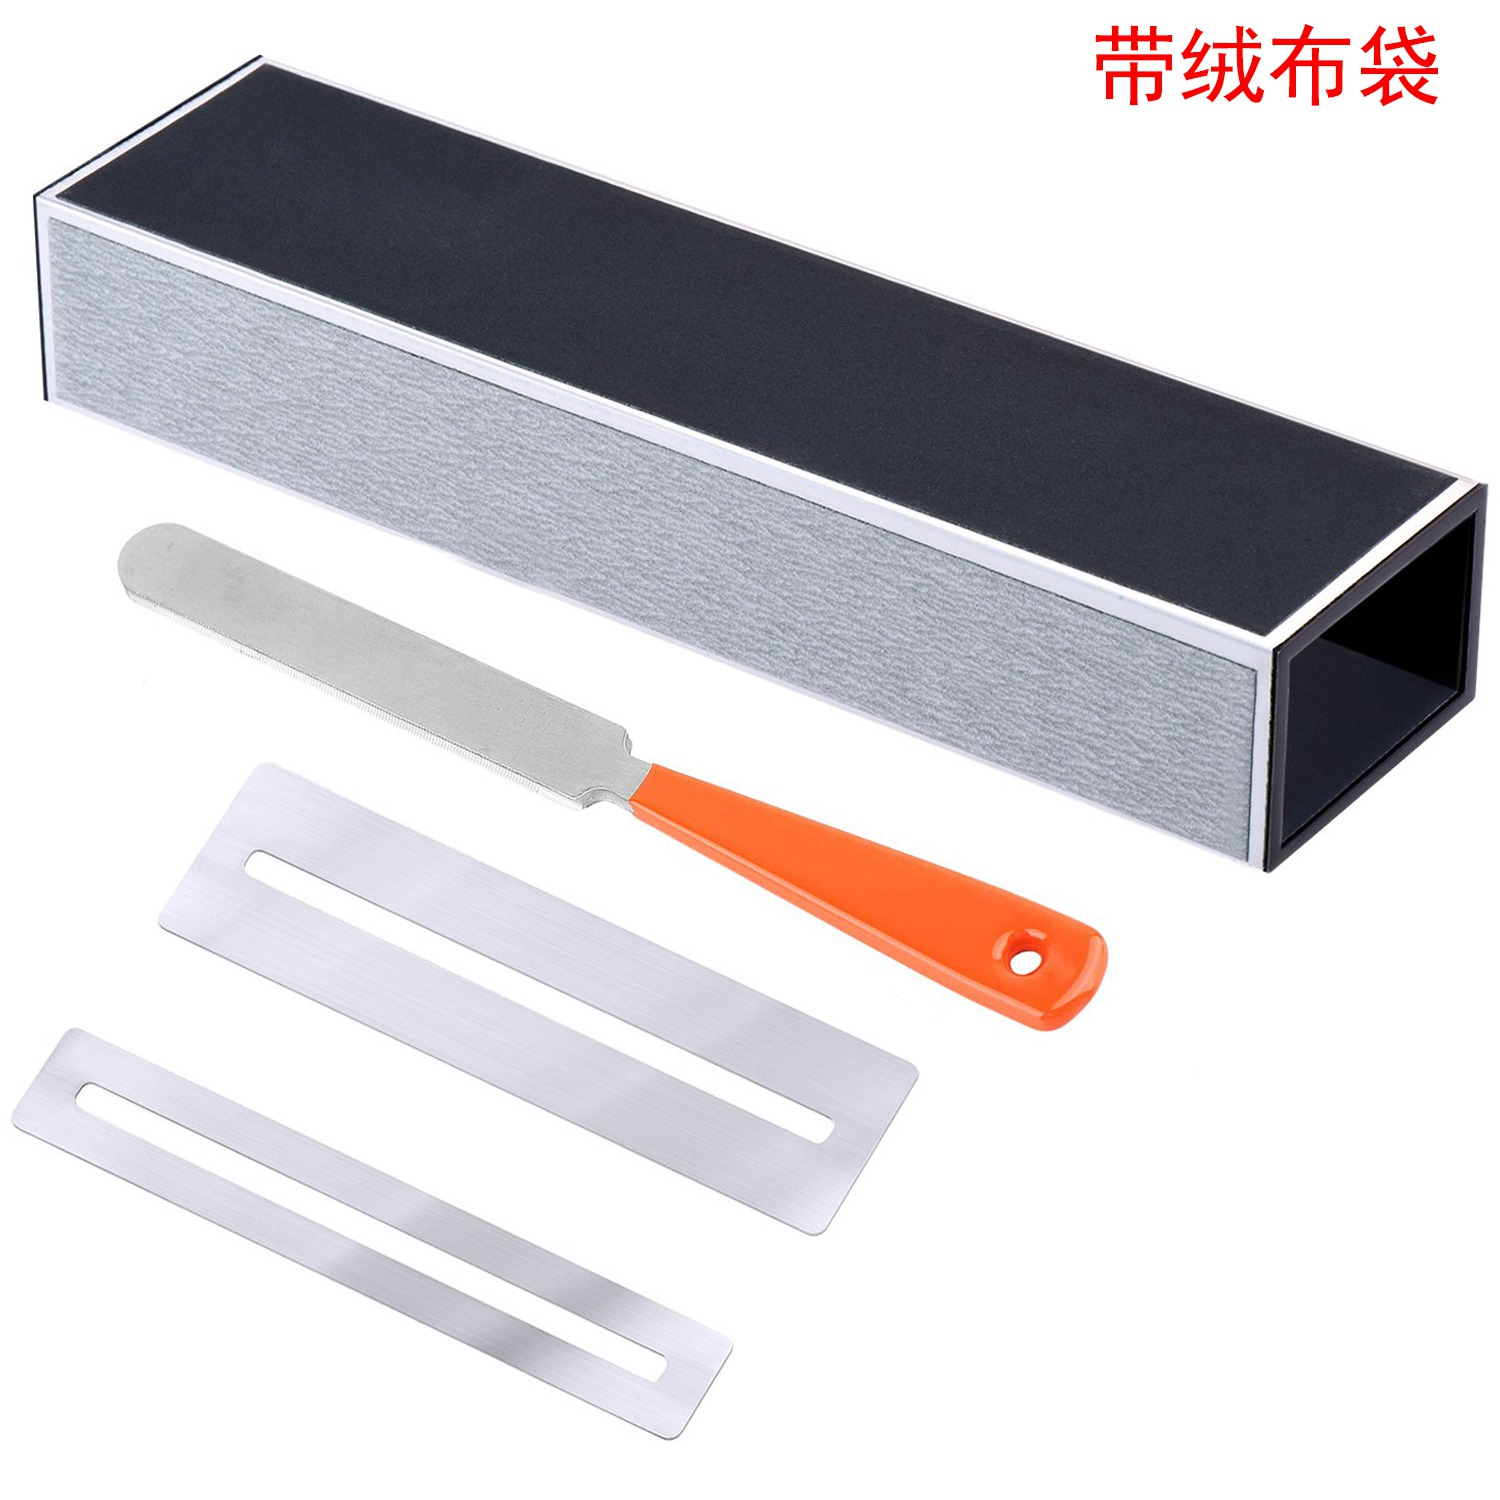 Stringed Instruments Shop For Cheap Guitar Fingerboard Luthier Tool Set Fret Crowning Luthier File,fret Sanding Leveler Beam Leveling Bar,fingerboard Guards,sandi Top Watermelons Guitar Parts & Accessories